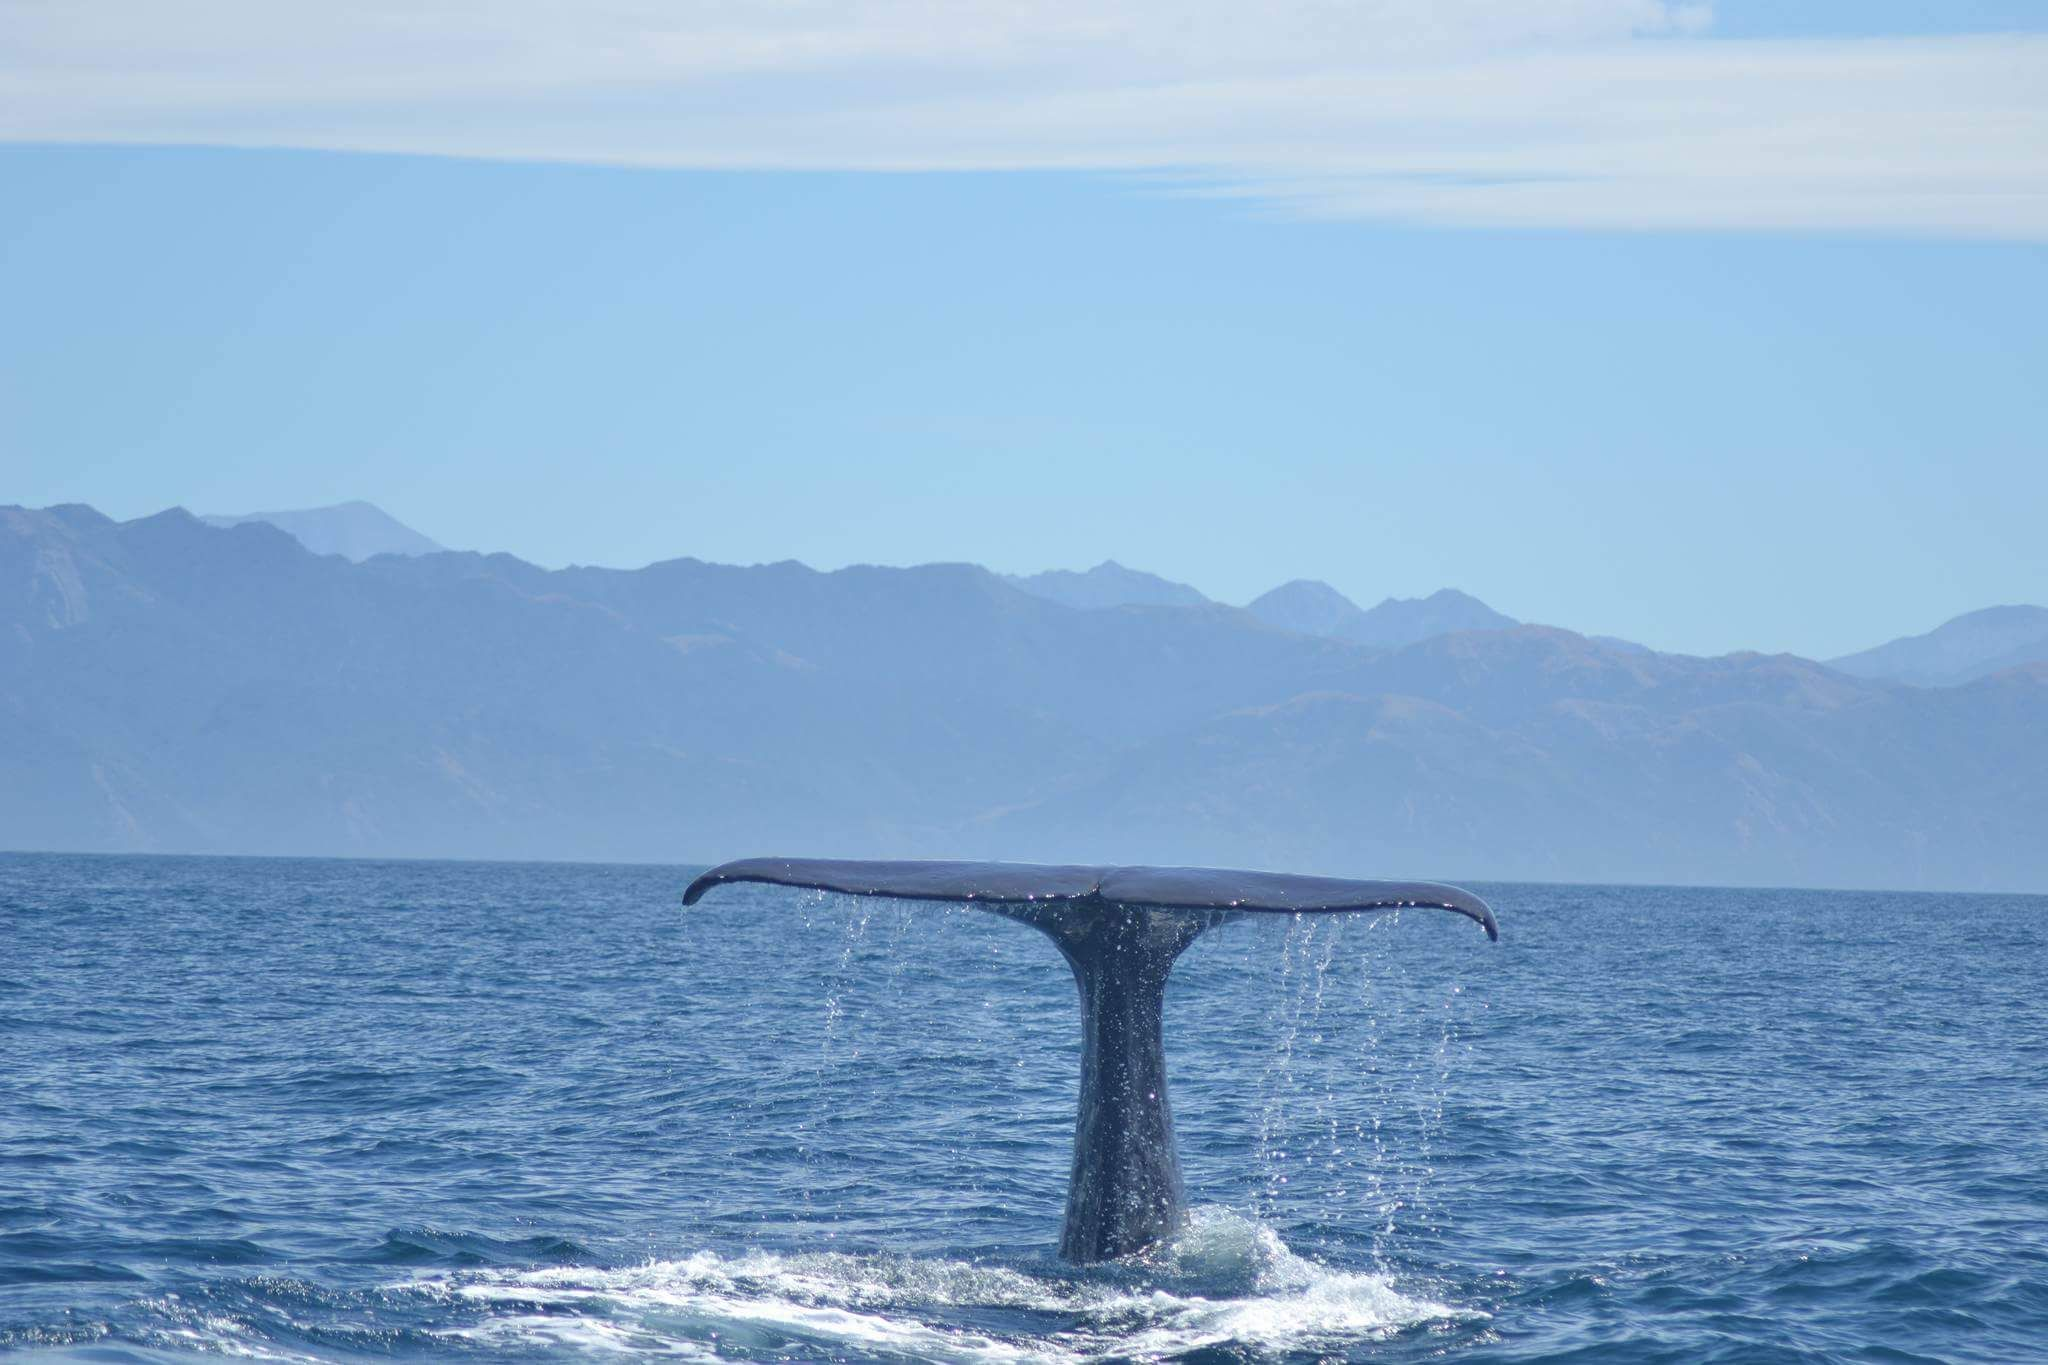 "Whale Watch Kaikoura on Twitter: ""Semi-resident #spermwhale Tutu shows such an amazing tail. #kaikoura #whalewatching #nzmustdo https://t.co/O7VBlLX1dx"""